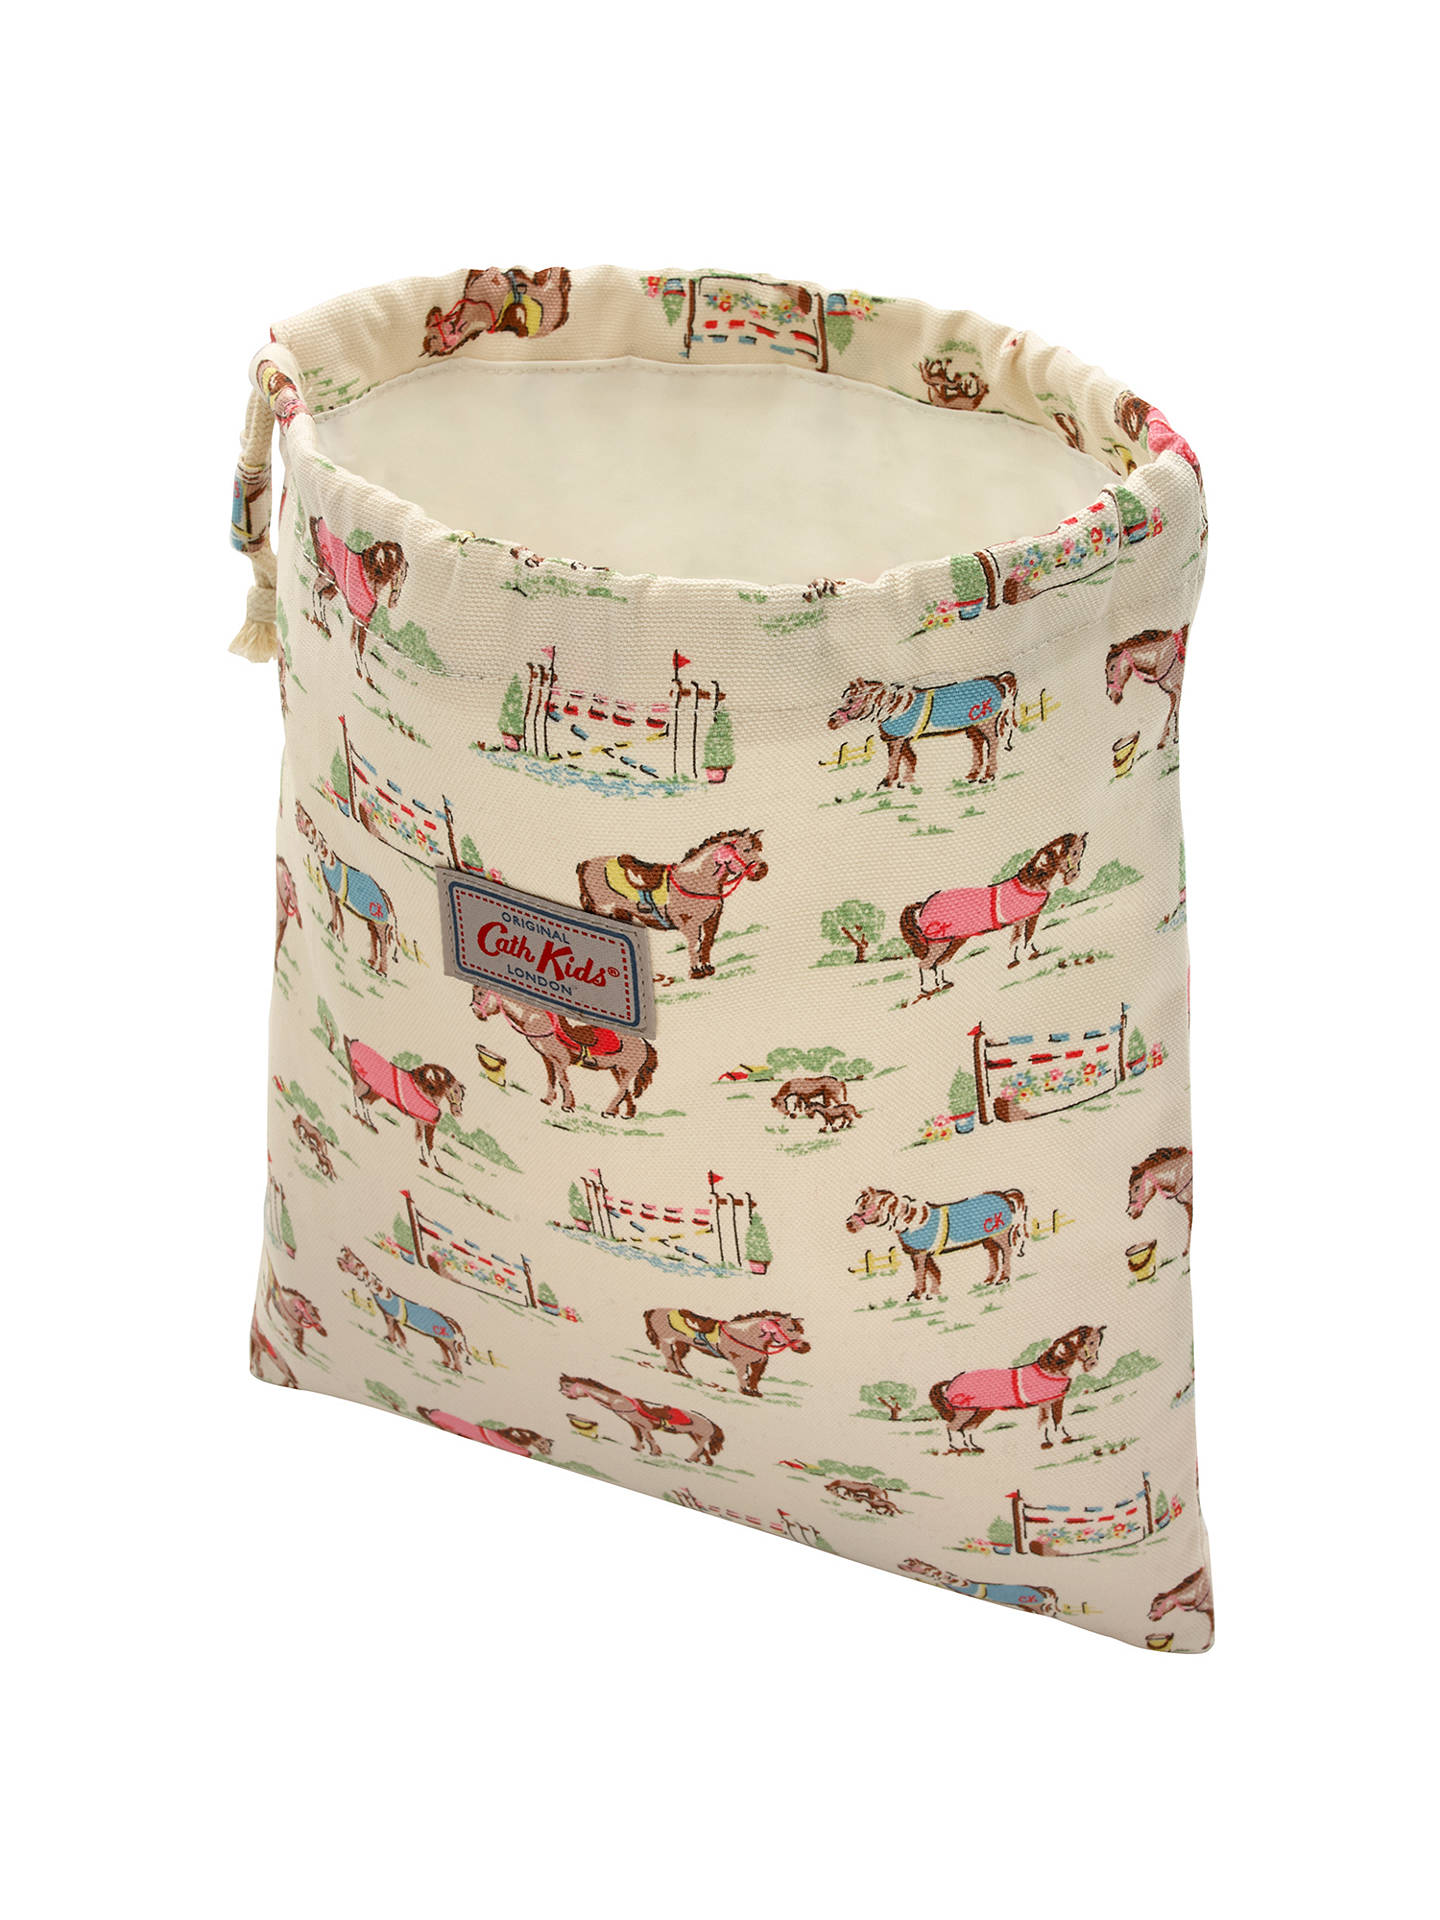 Buy Cath Kids Children's Pony Print Drawstring Wash Bag, Cream Online at johnlewis.com